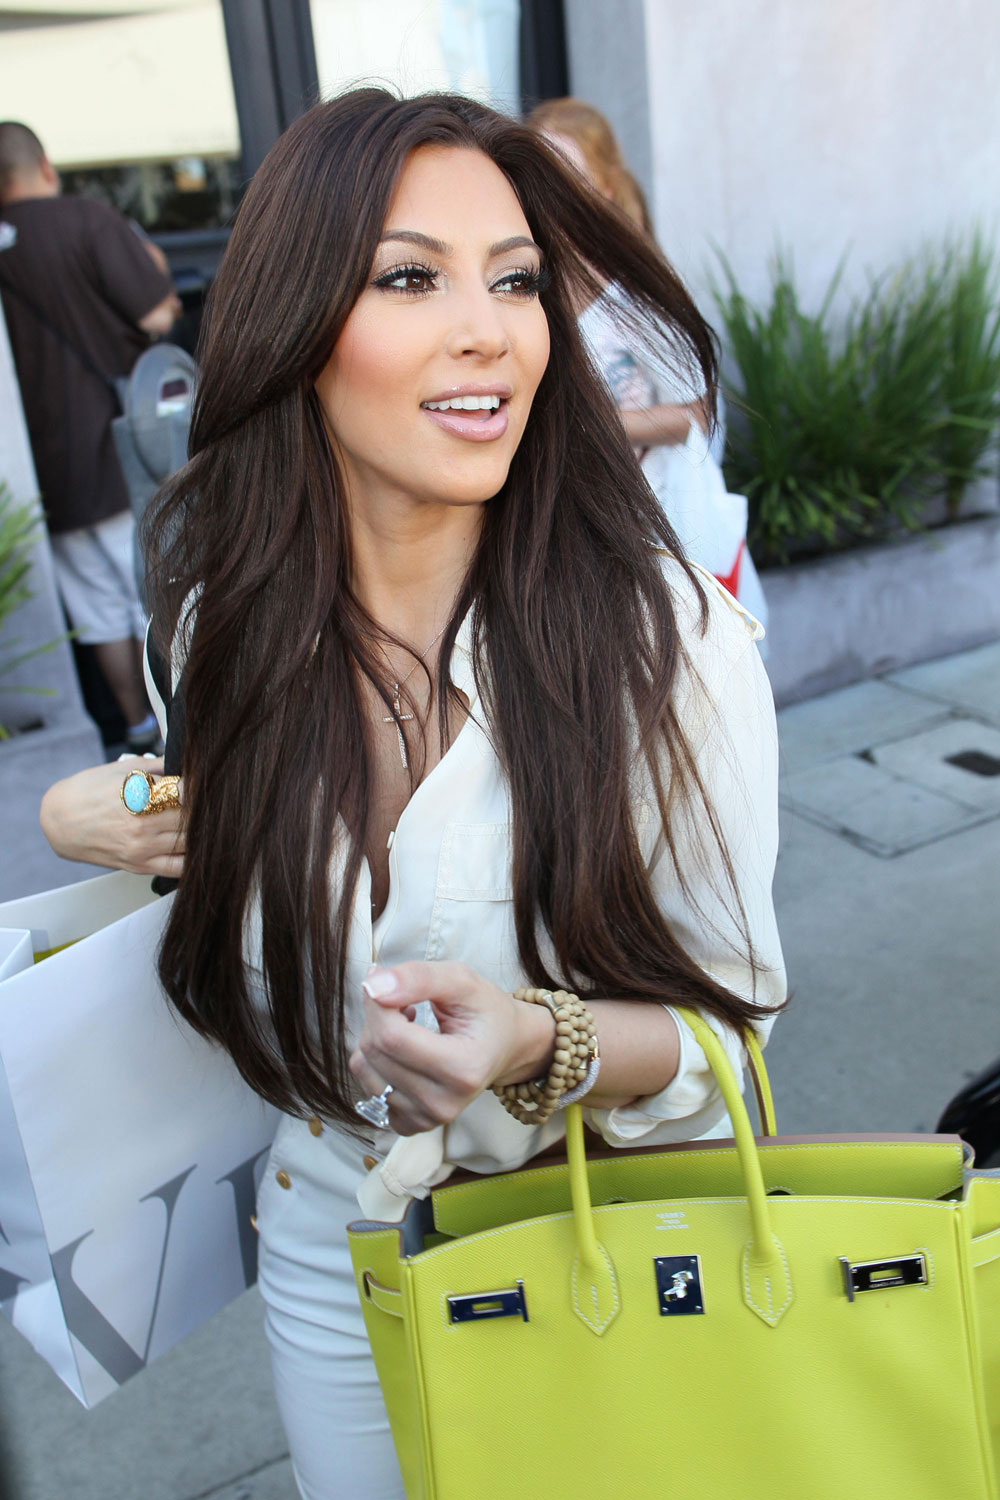 Update : Here's a photo of Kim with darker hair on 6/30.